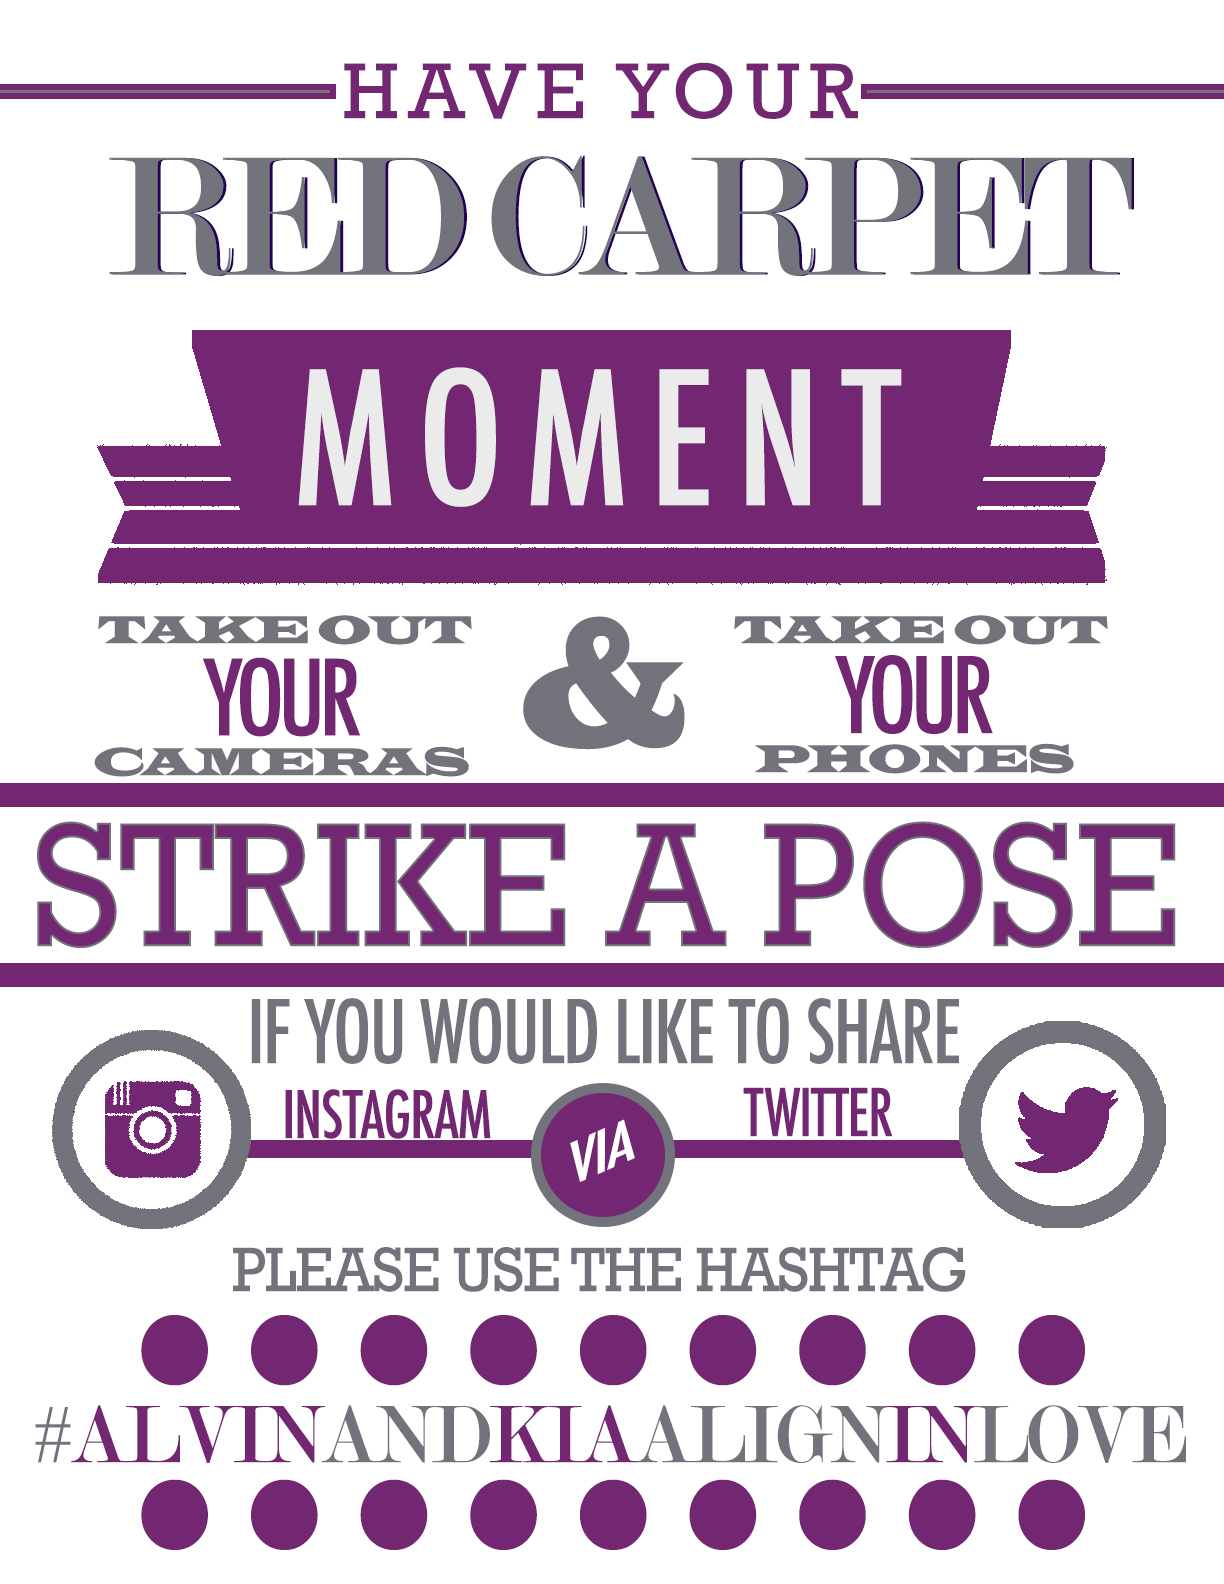 LaFete - Red Carpet Moment Sign v2.jpg